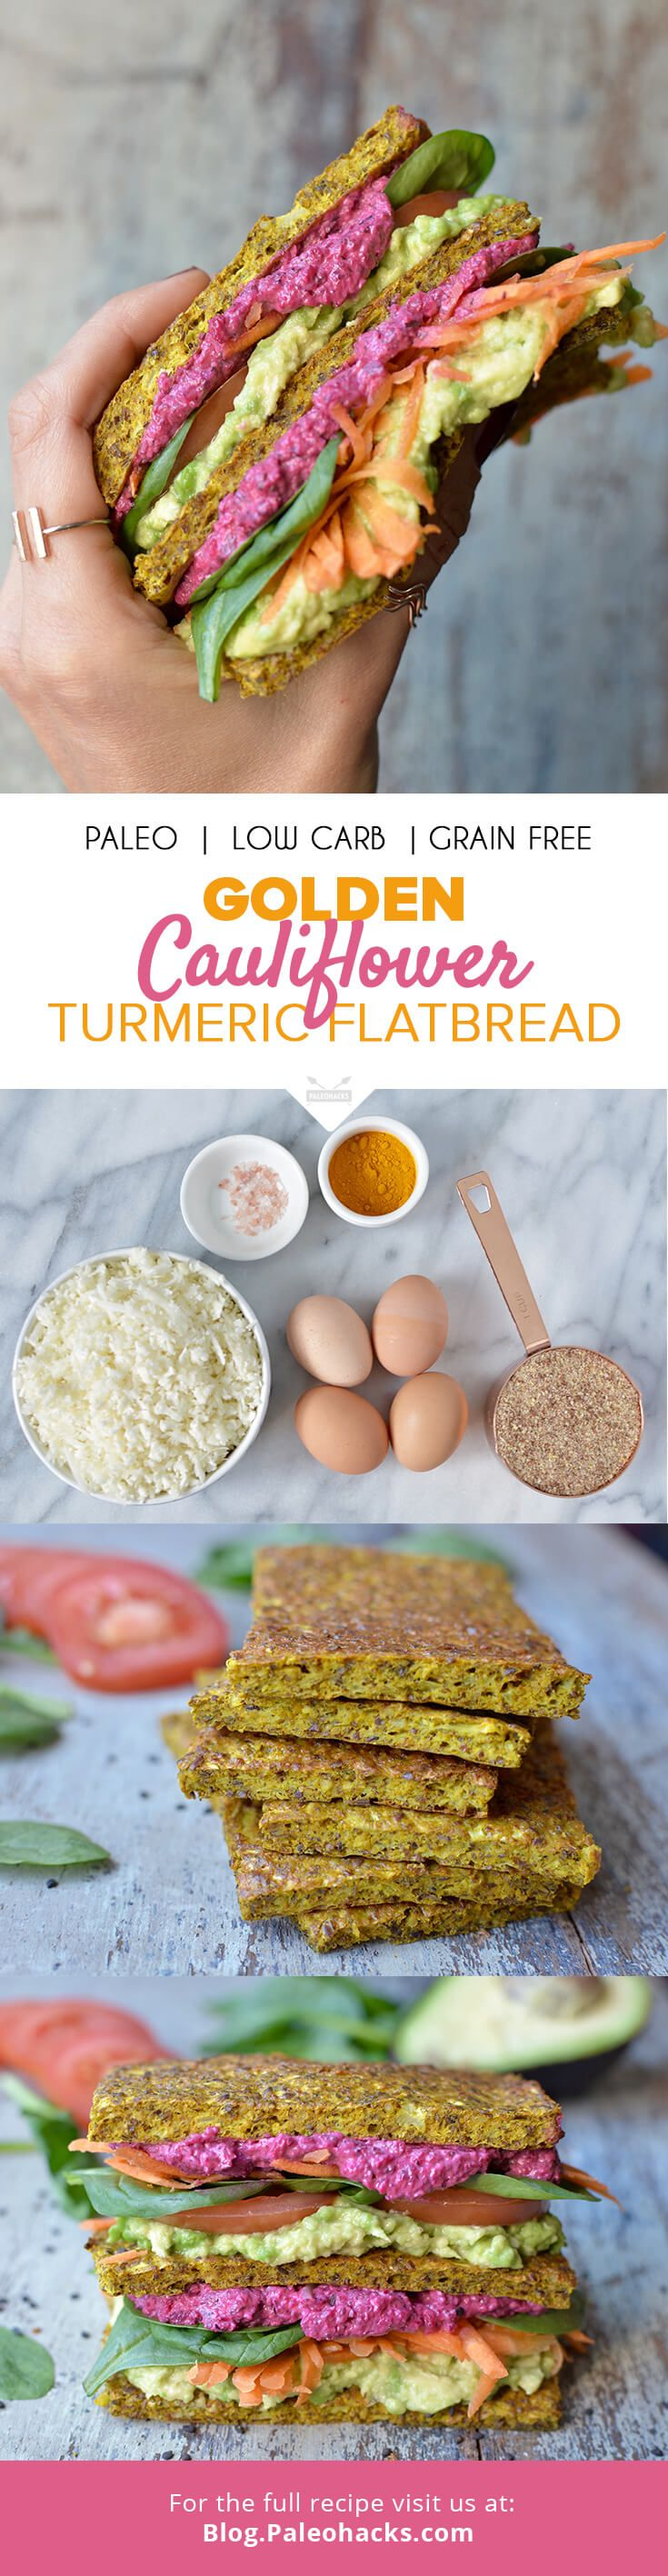 golden cauliflower turmeric flatbread pin